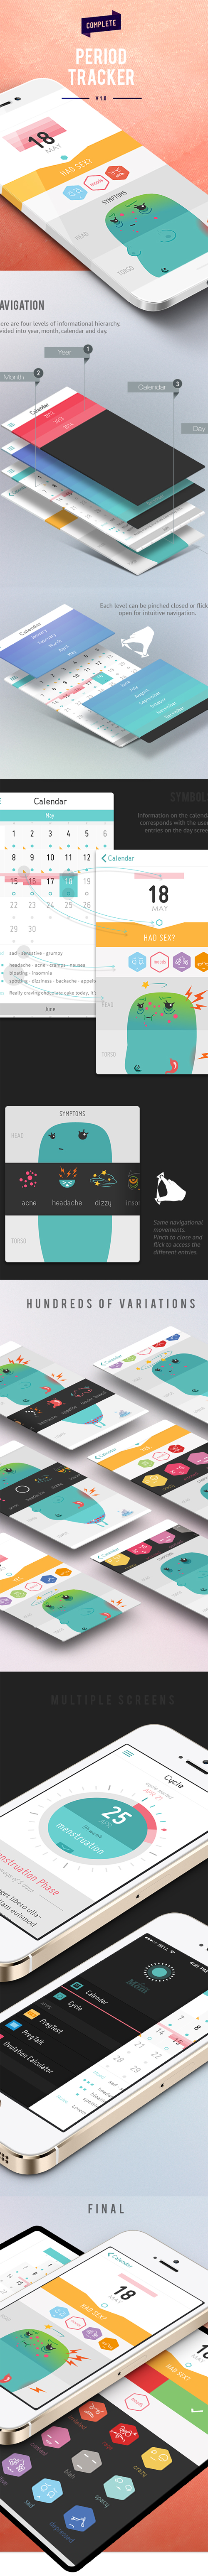 Amazing Mobile App UI Designs with Ultimate User Experience - 12